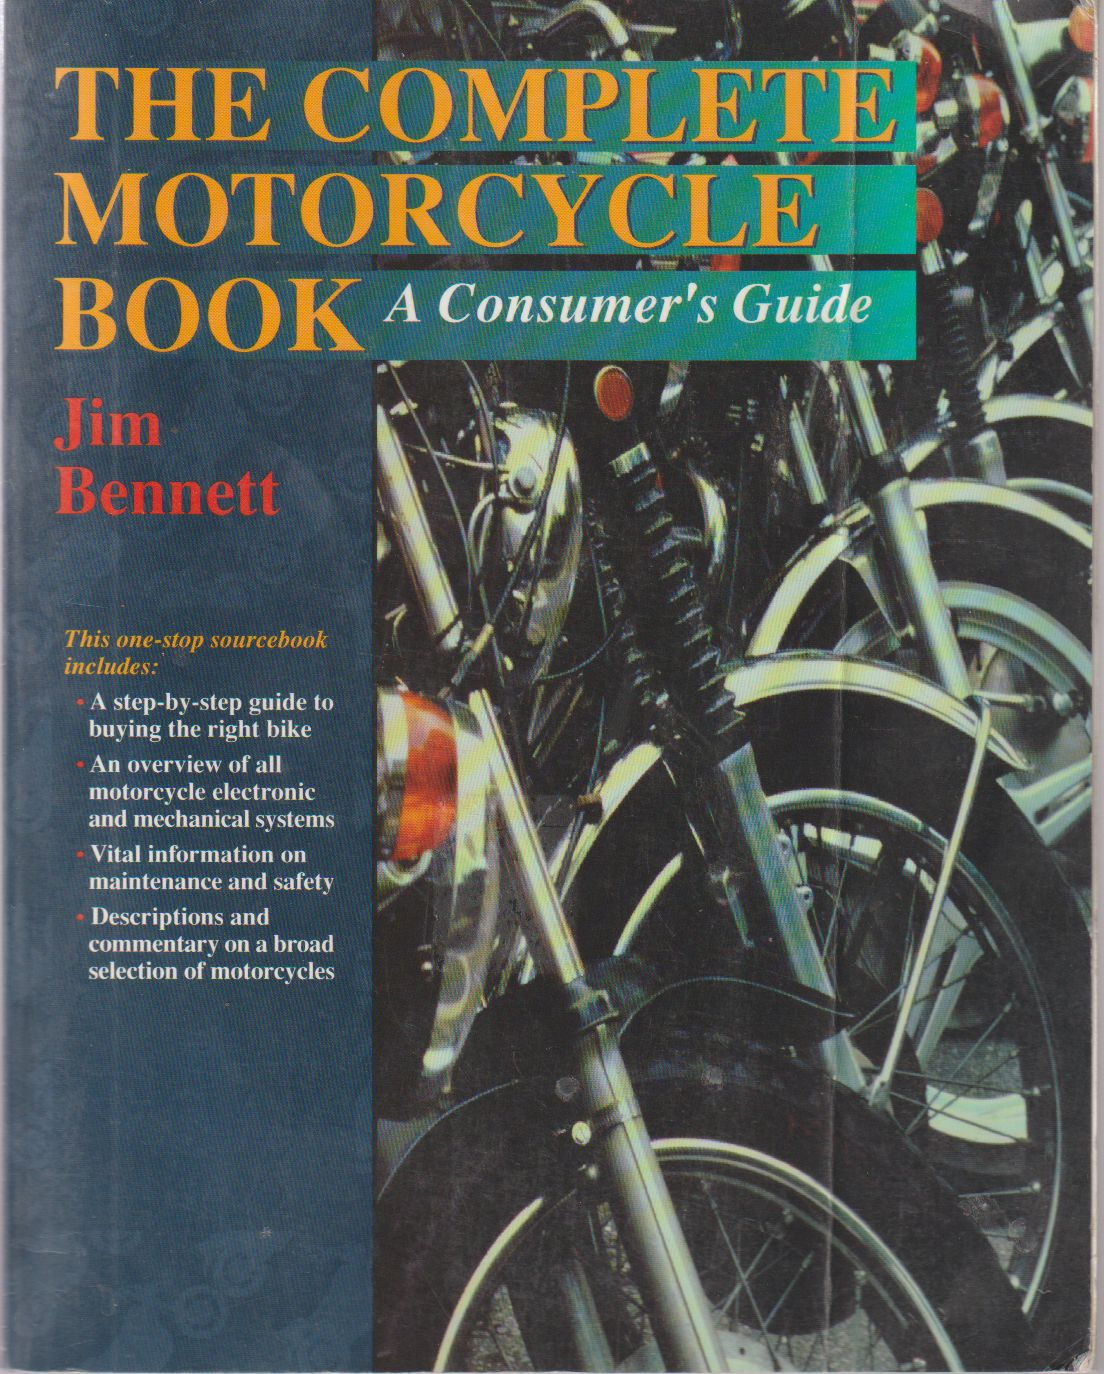 The Complete Motorcycle Book : A Consumer's Guide 9780816028993